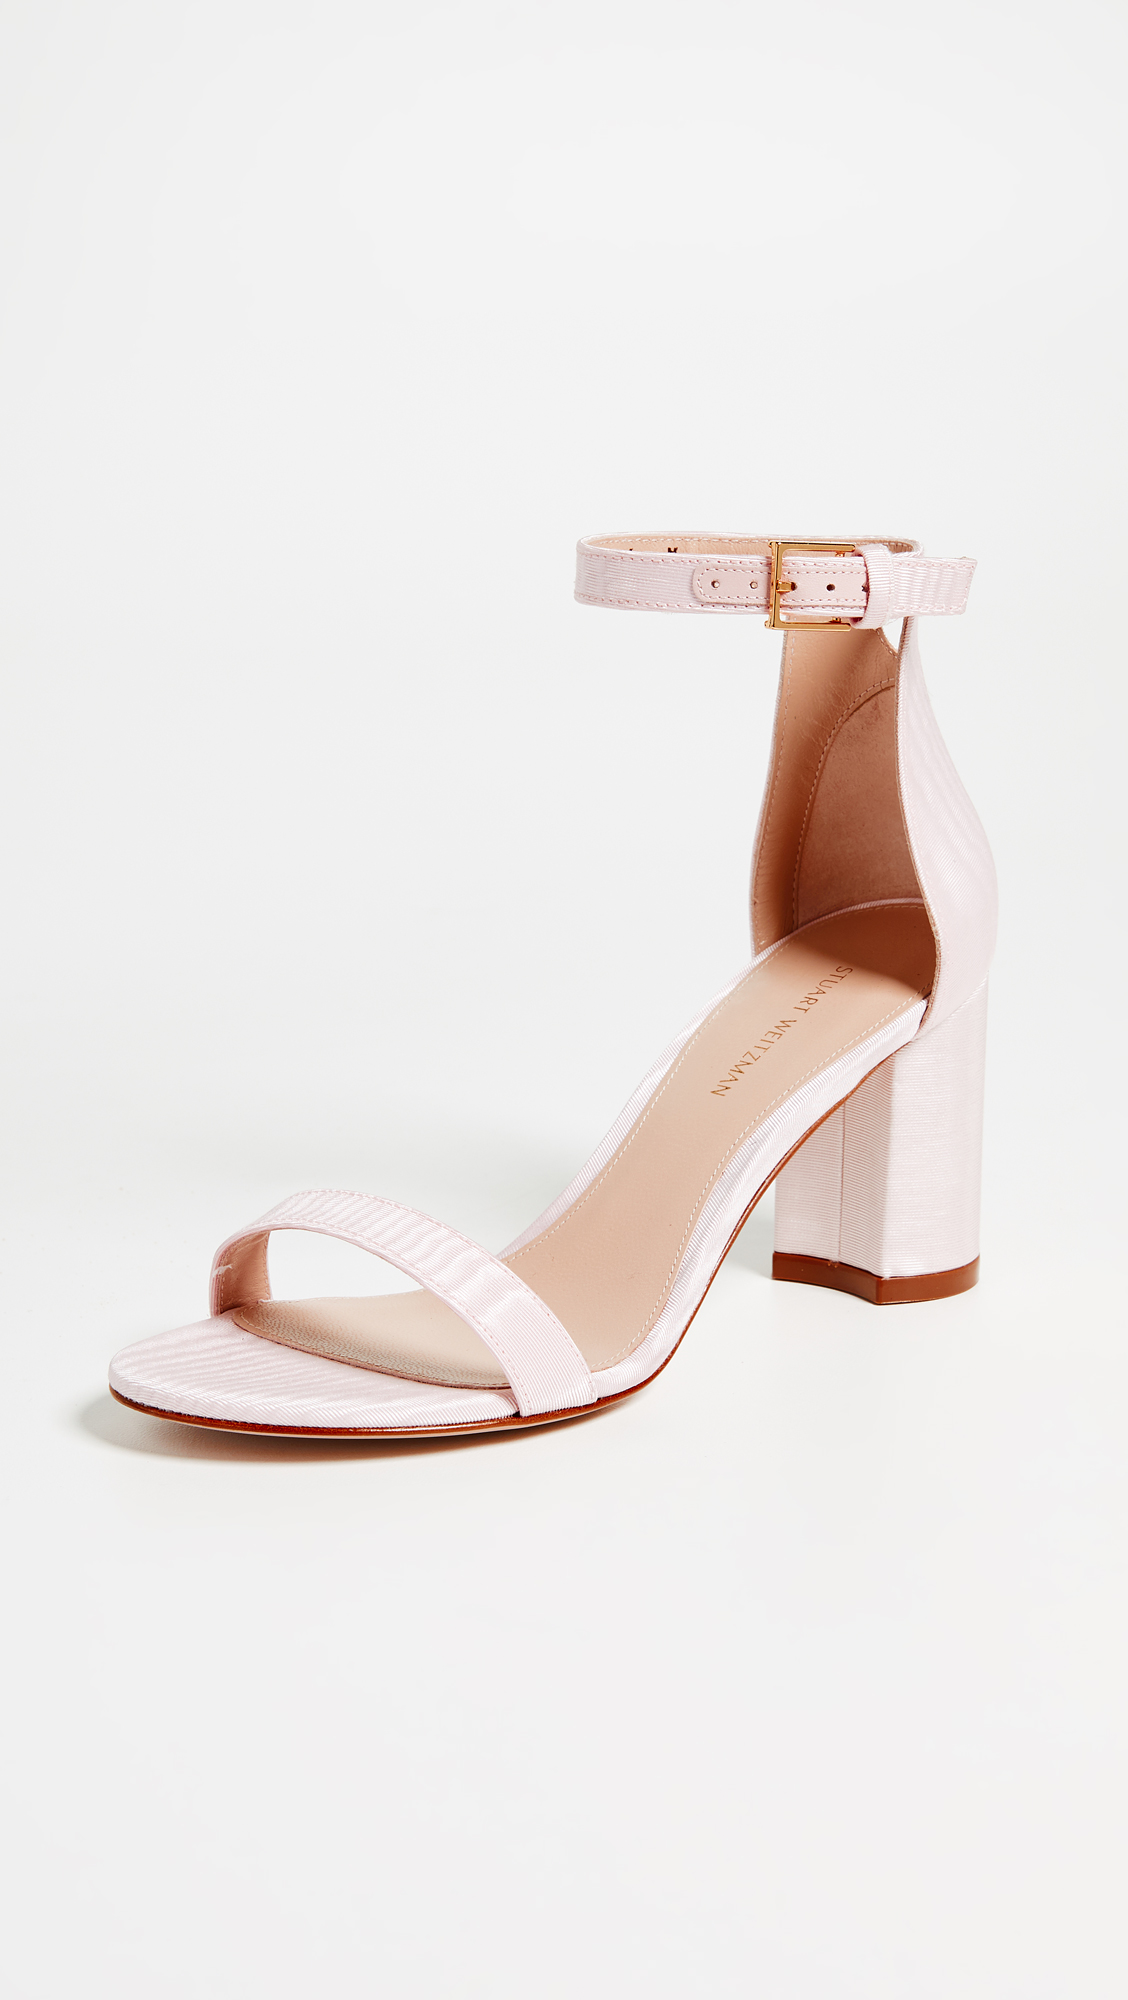 Stuart Weitzman Less Nudist Sandals - Shell Pink